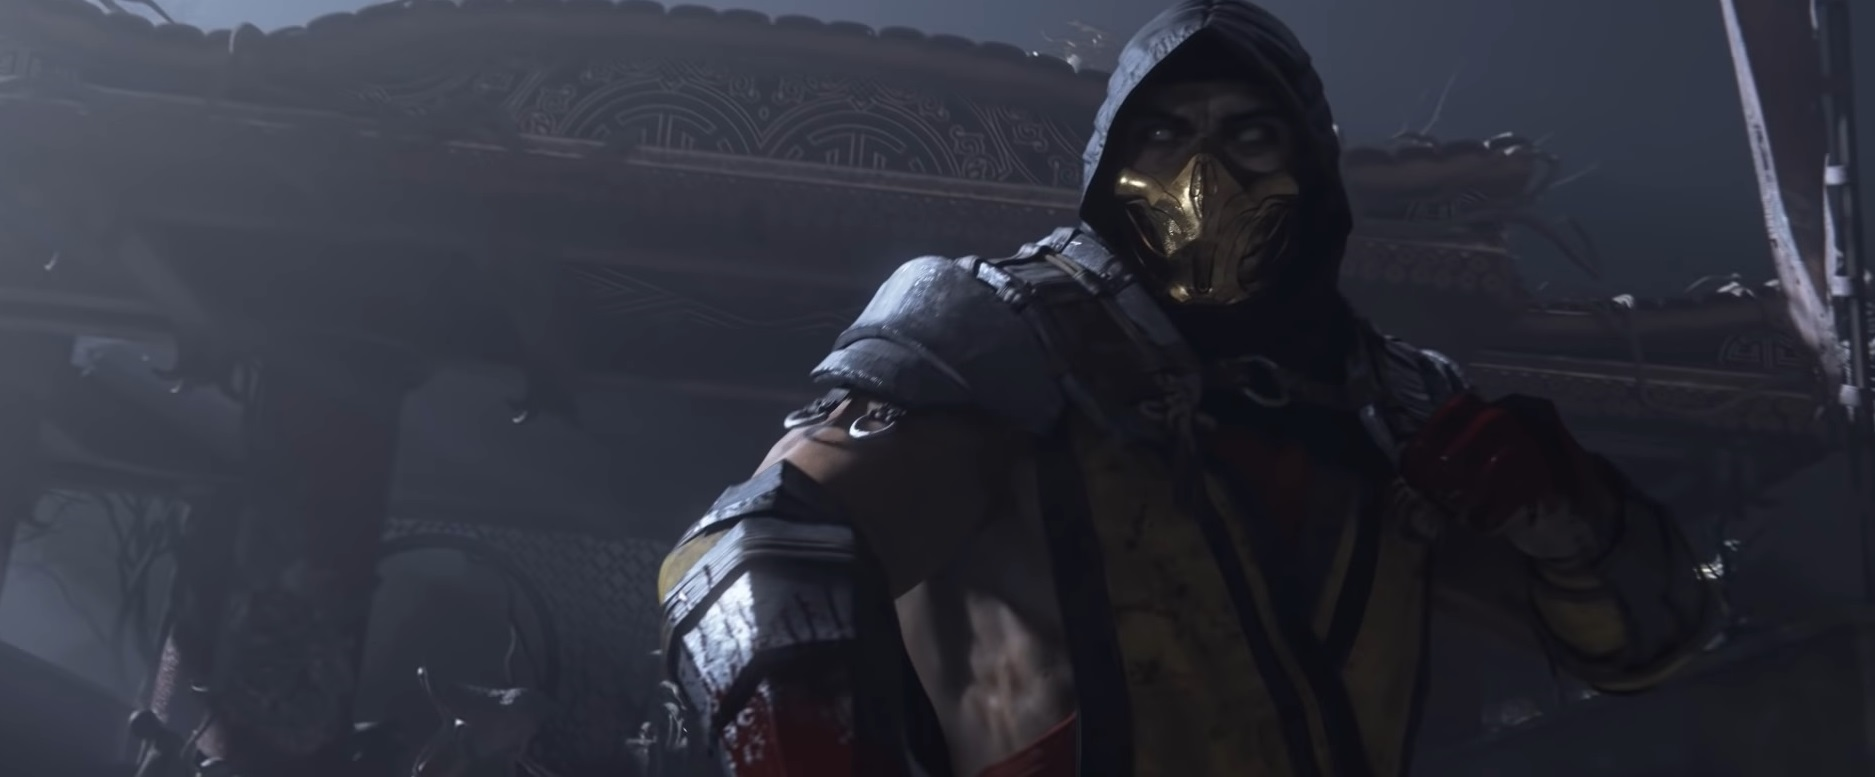 Mortal Kombat 11 will allegedly include six DLC fighters